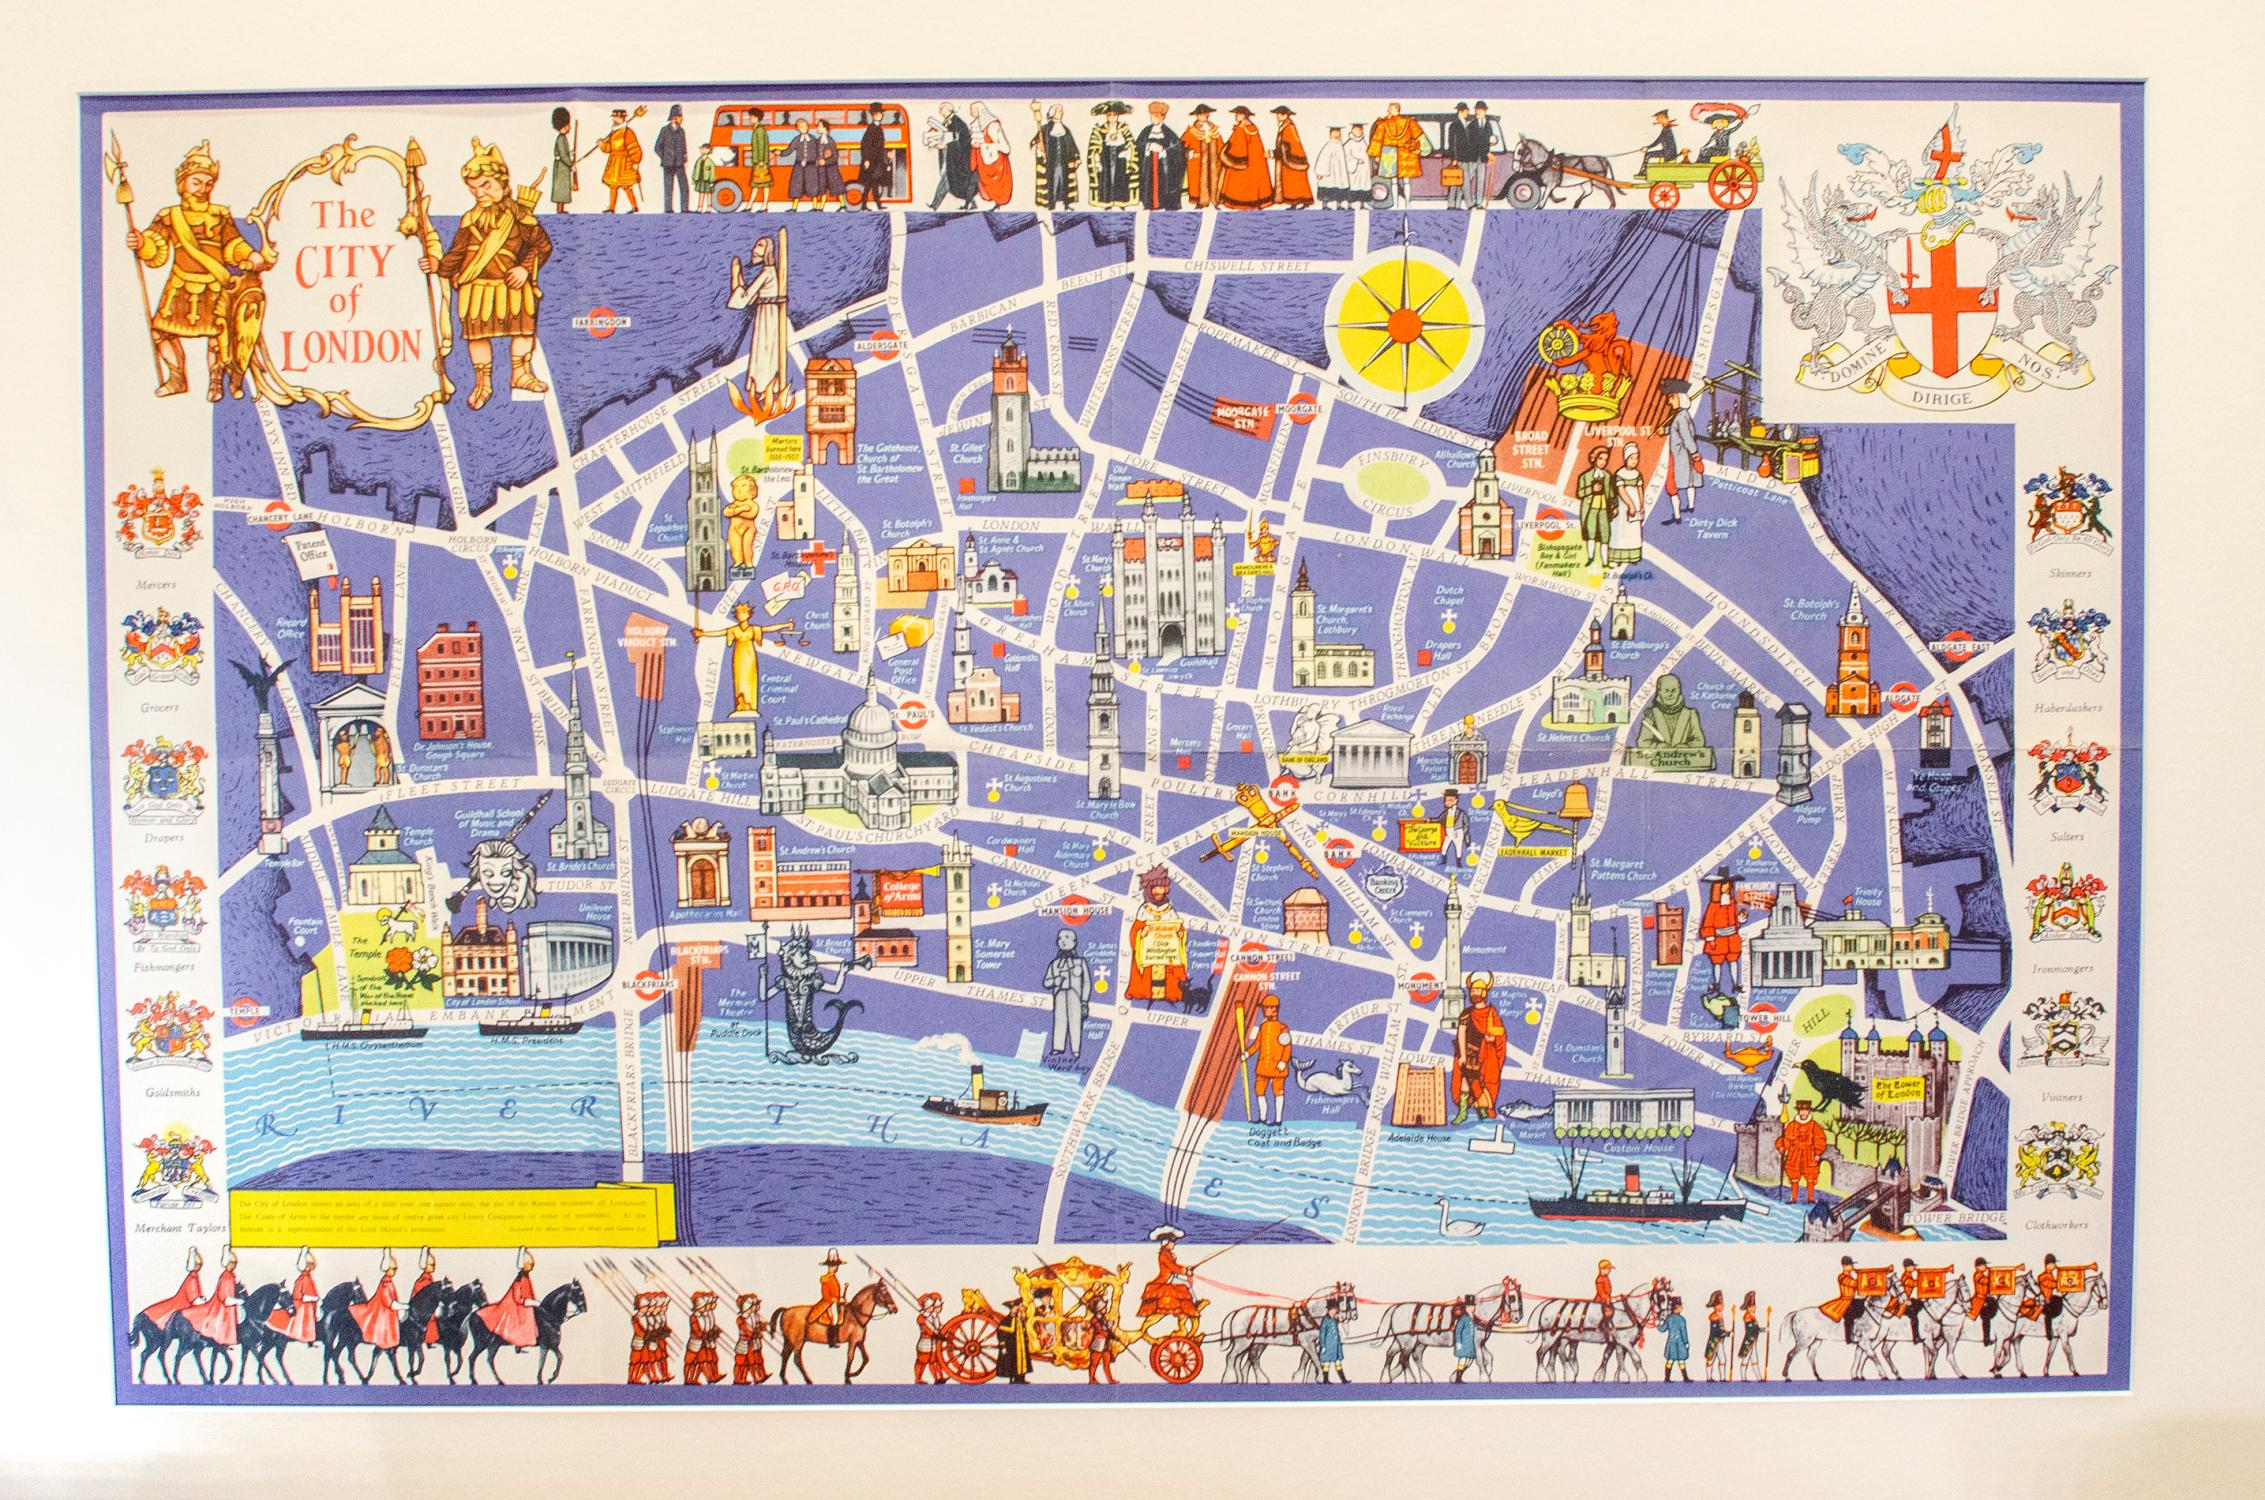 City Of London Map The City of London: Pictorial Map. by SIMS, Mary (Designer